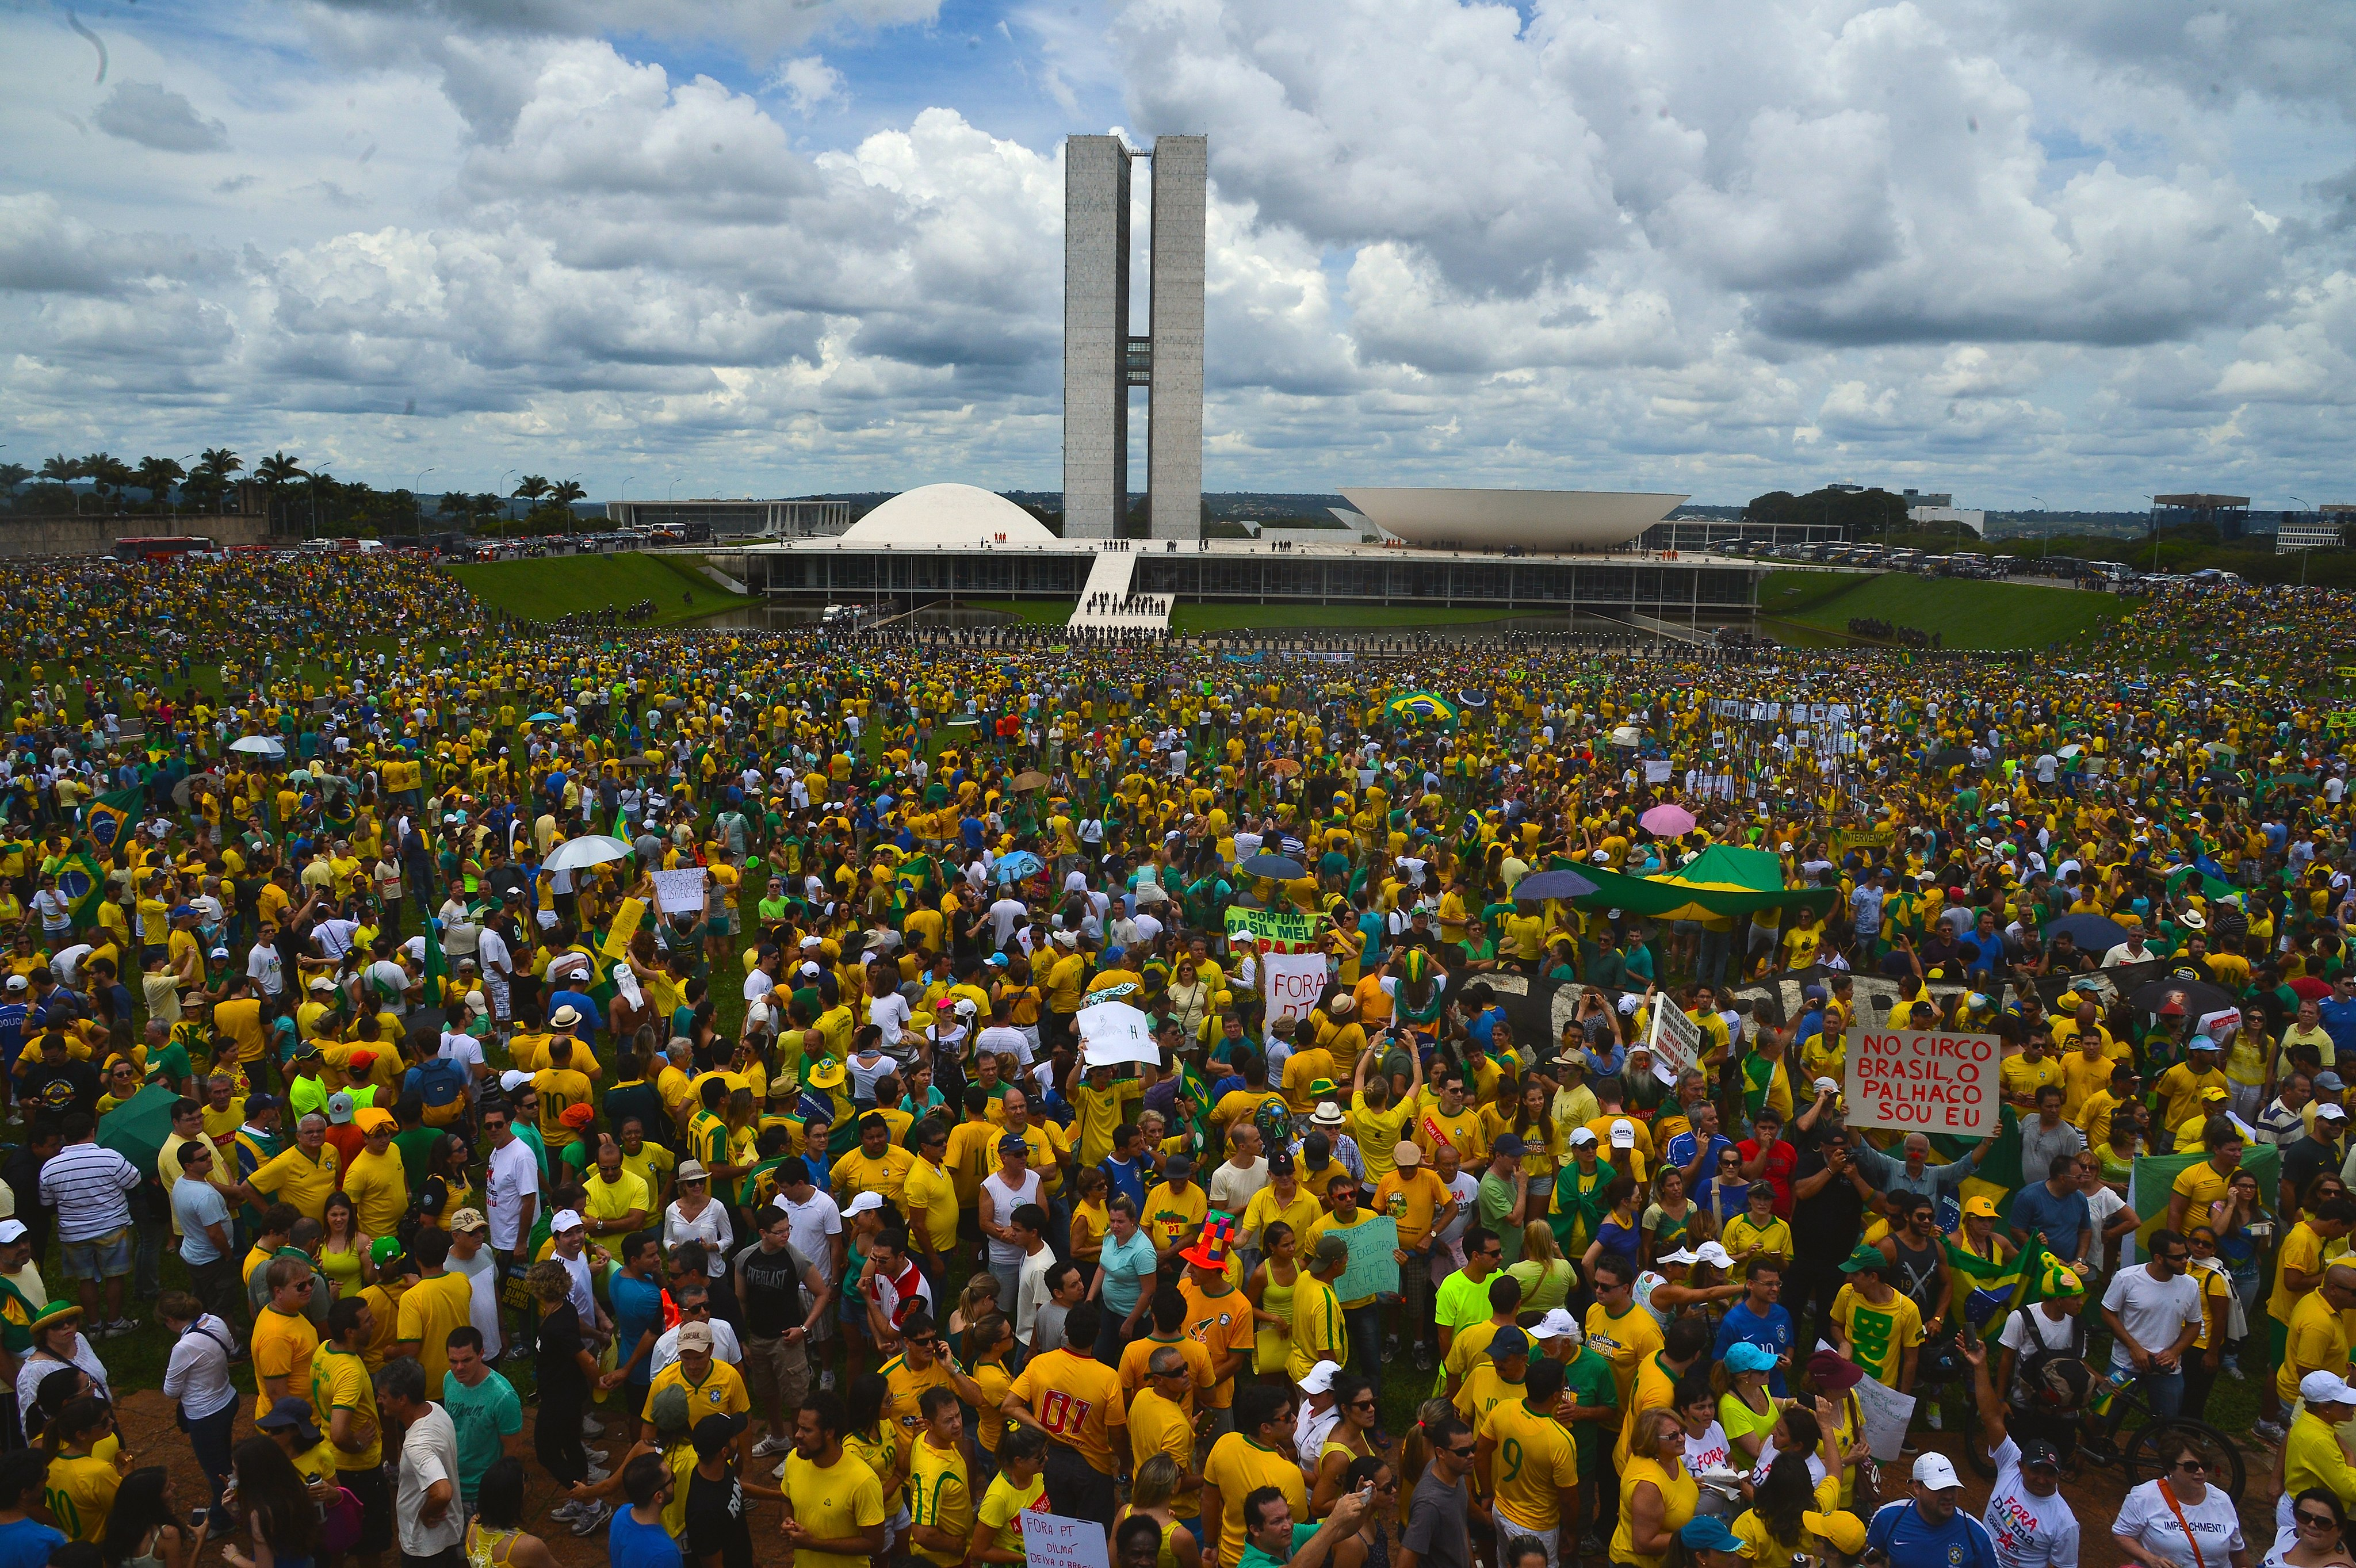 A large crowd of anti-corruption protesters dressed predominantly in the yellow and green of the Brazilian flag stands in front of the Congresso Nacional, designed by Oscar Niemeyer, in Brasilia, Brazil.